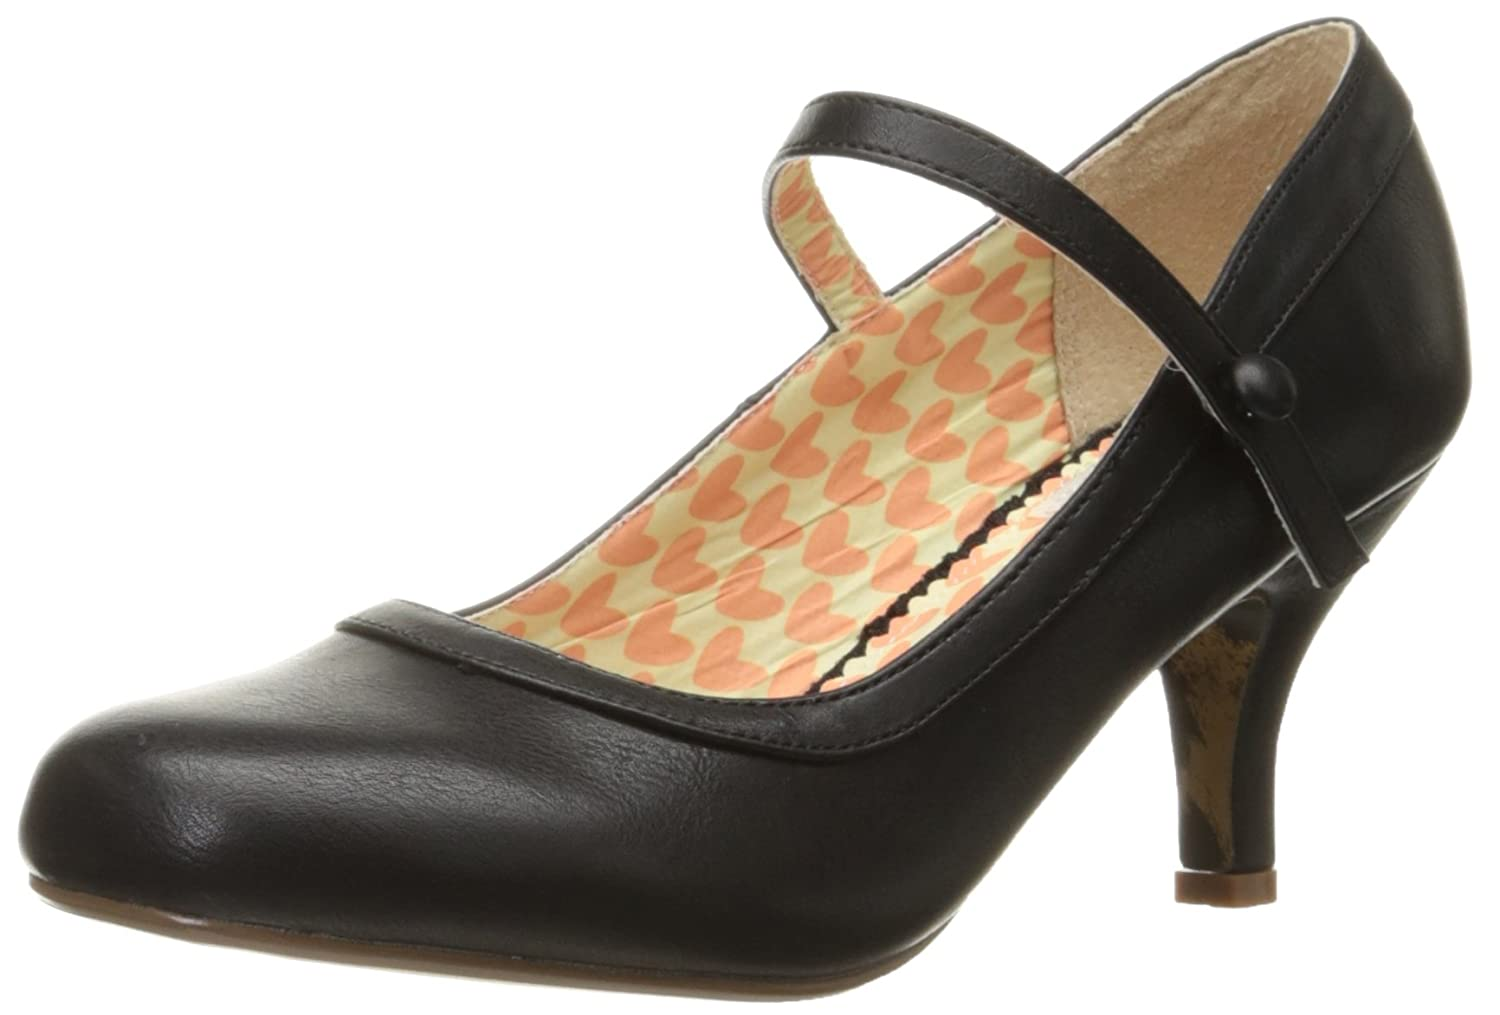 1950s Style Shoes Bettie Page Womens Bp320-Bettie Dress Pump $58.09 AT vintagedancer.com